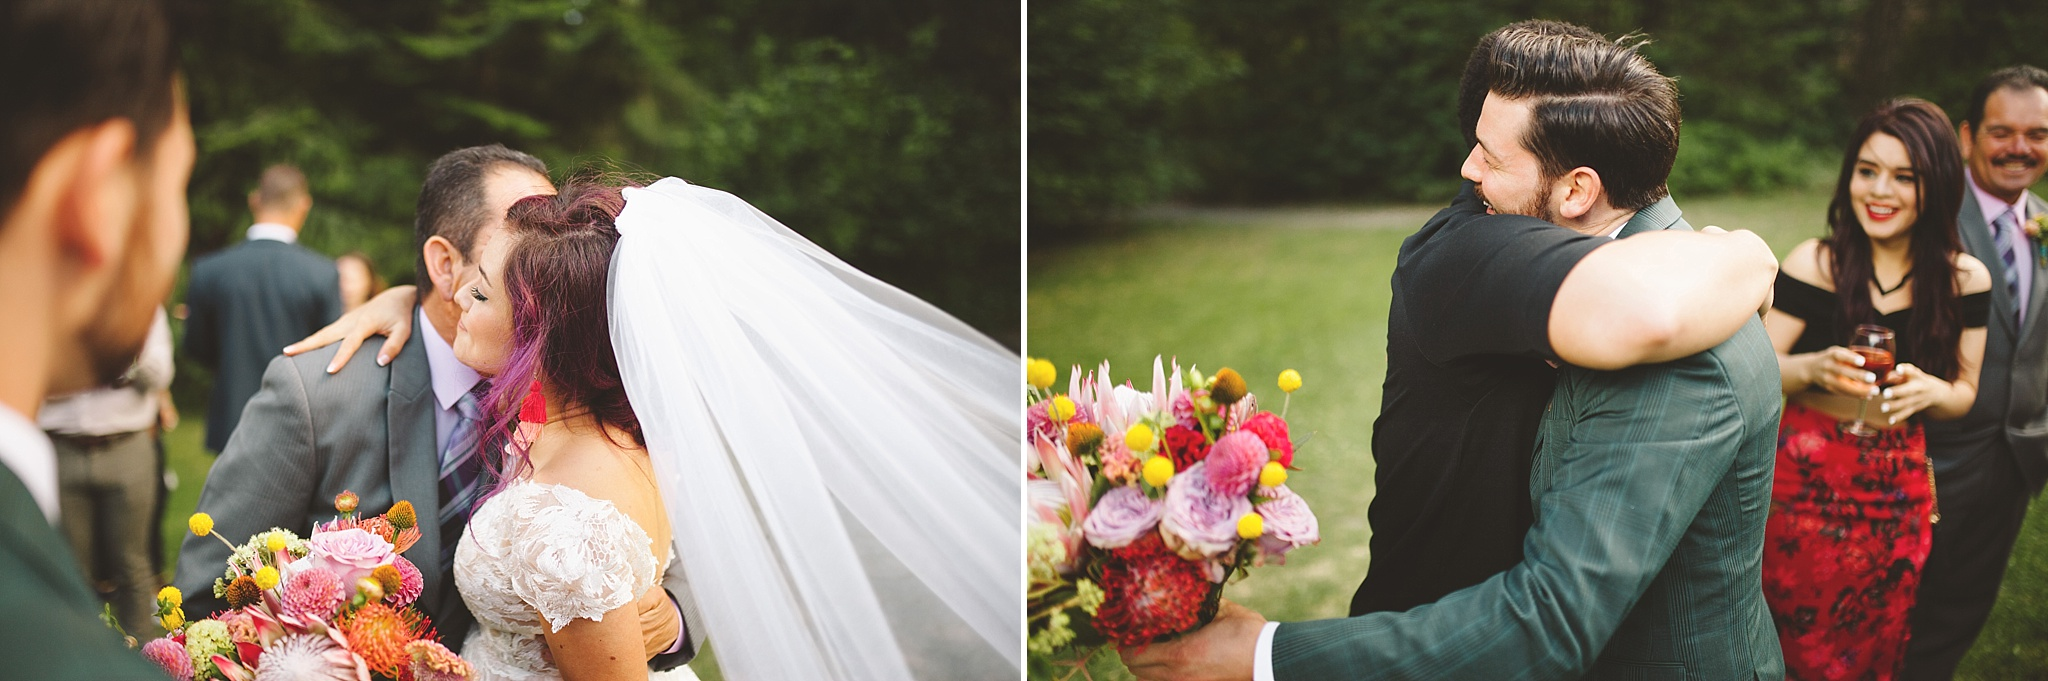 emotional moments after wedding ceremony